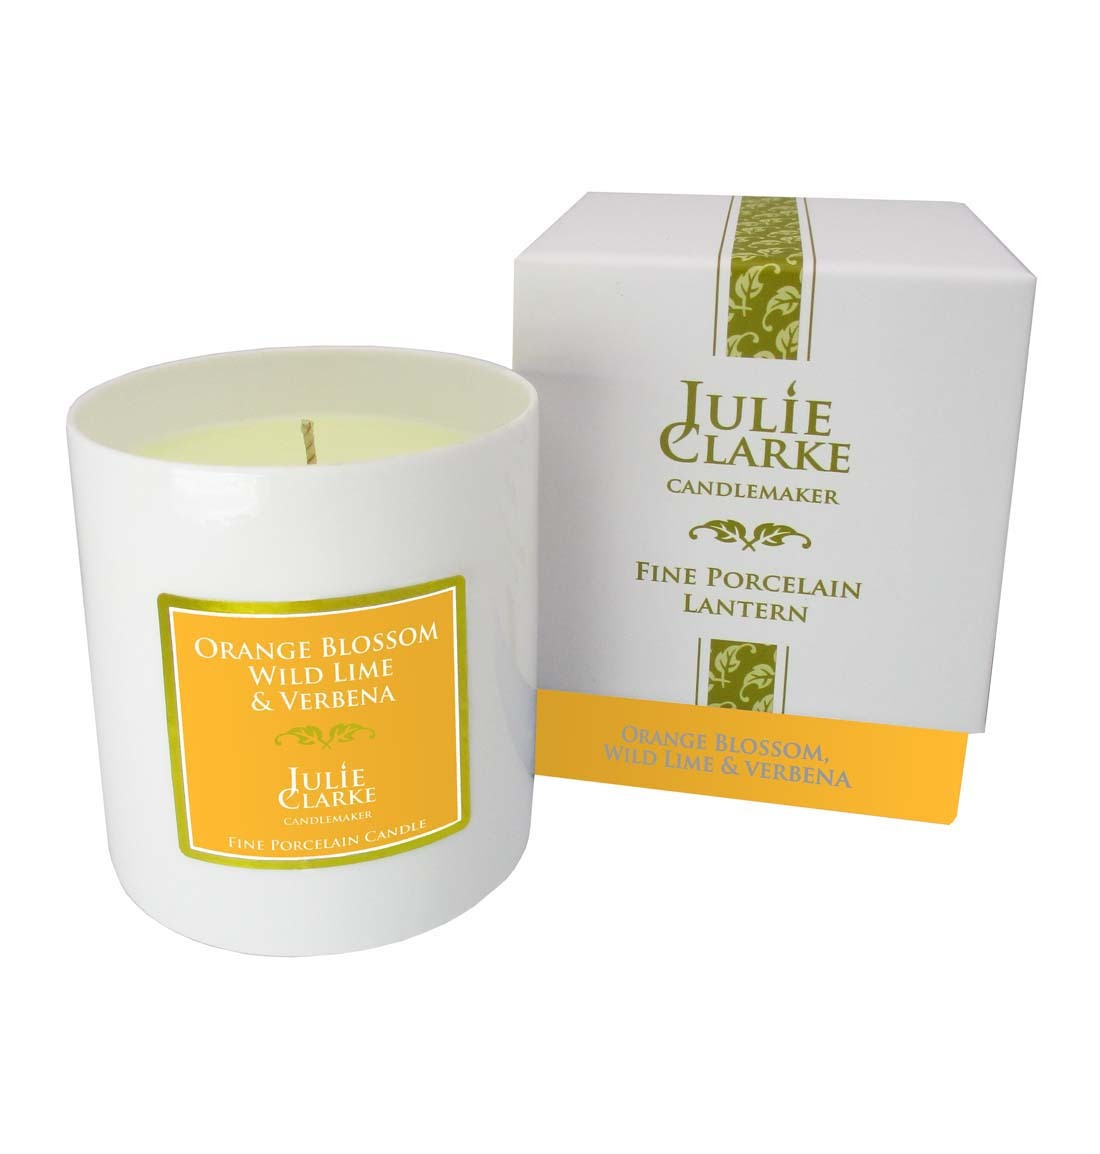 Orange Blossom, Wild Lime & Verbena White Porcelain Candle